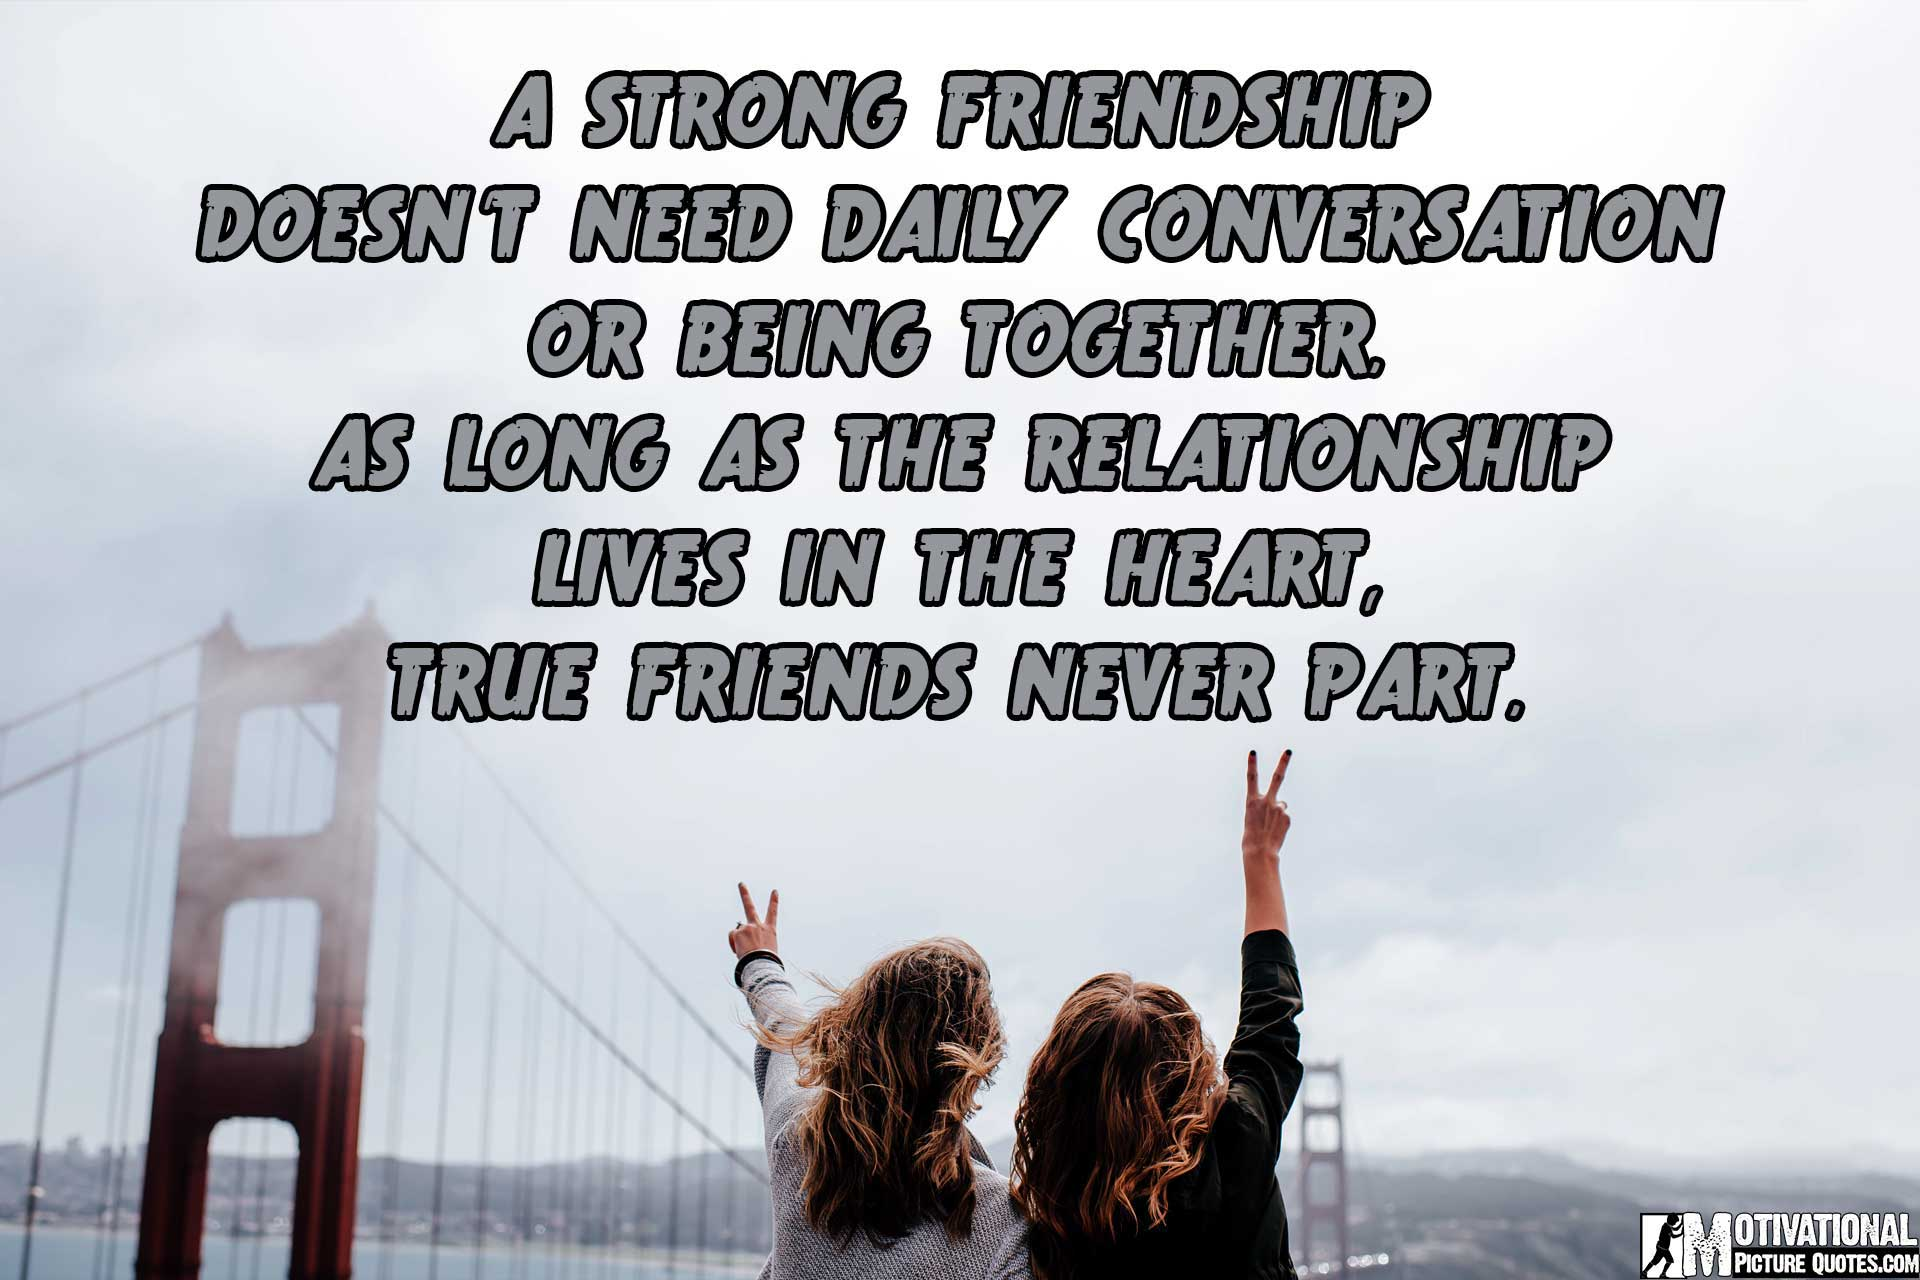 Maya Angelou Quotes About Friendship 55 Mind Blowing Friendship Quotes And Quotations That Make Your